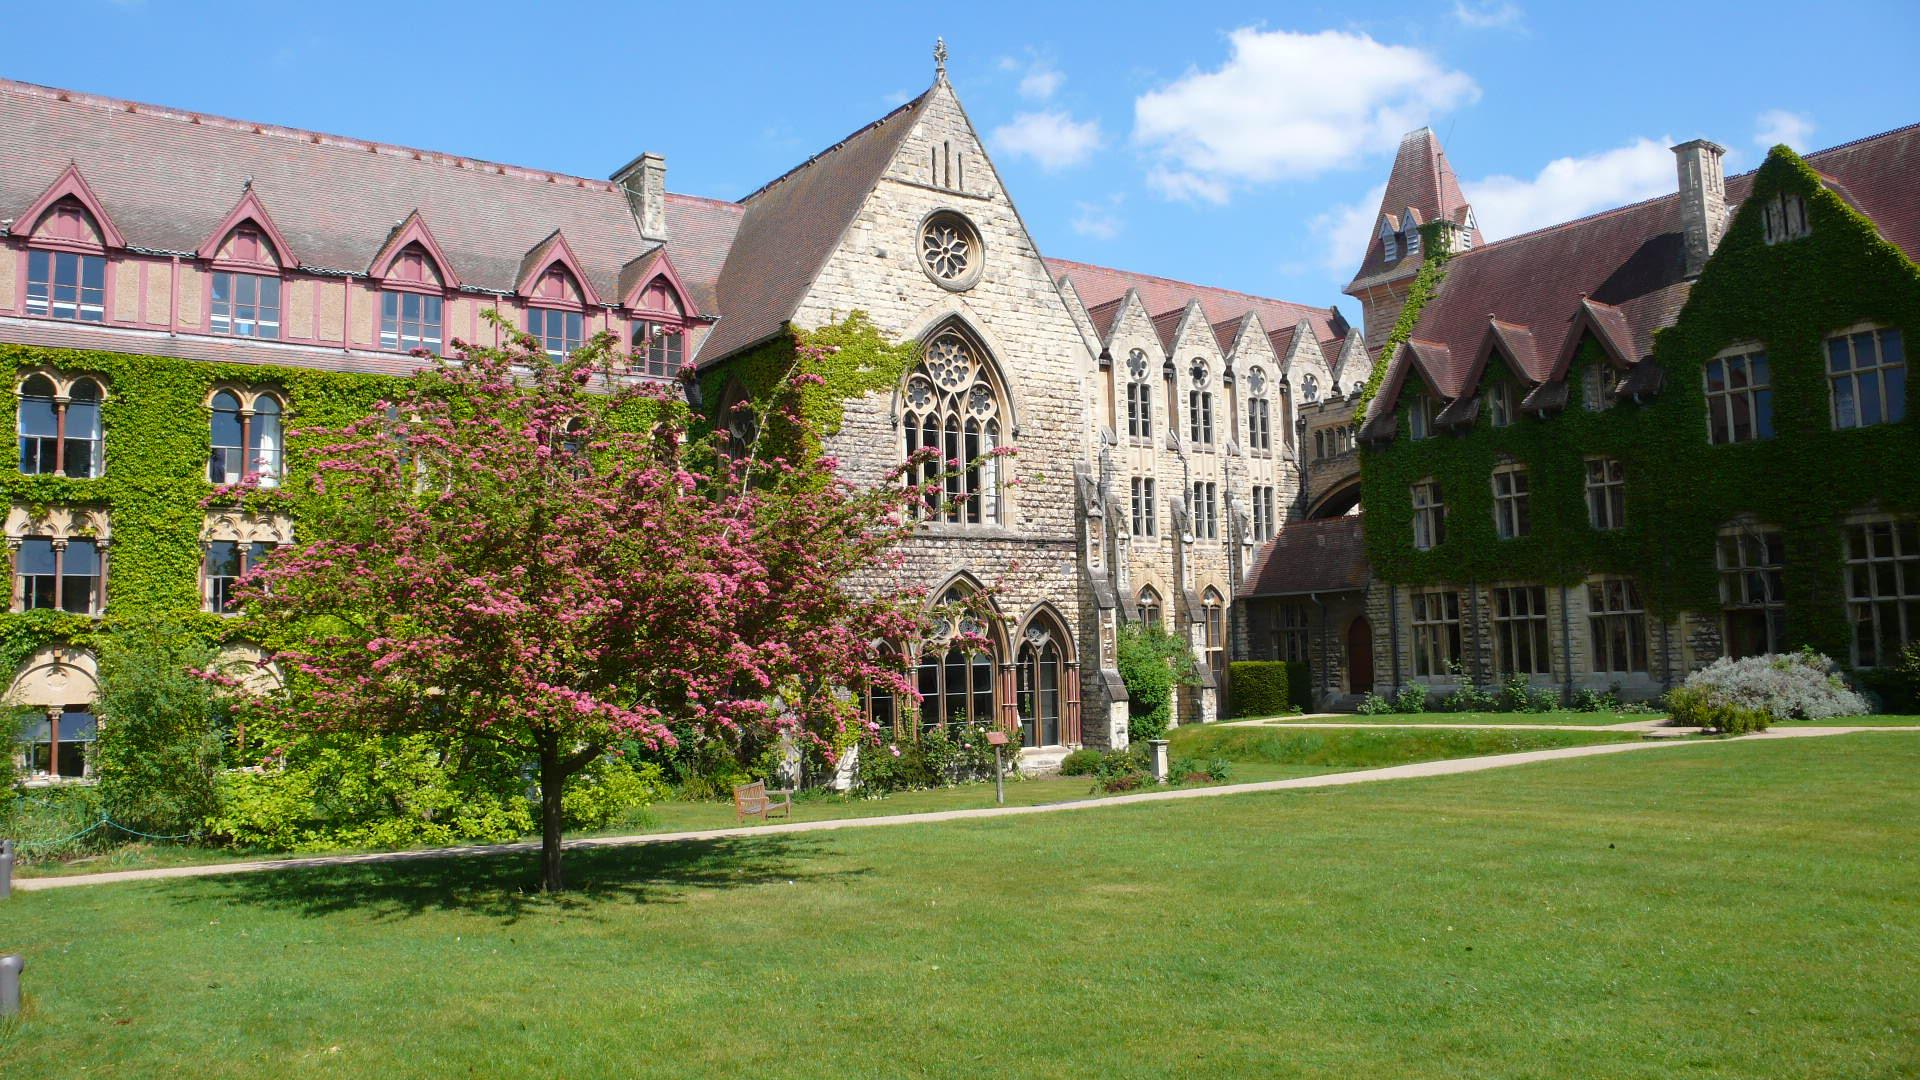 cheltenham women Cheltenham ladies' college is an independent boarding and day school for girls aged 11 to 18 in cheltenham, gloucestershire, england in the financial times.